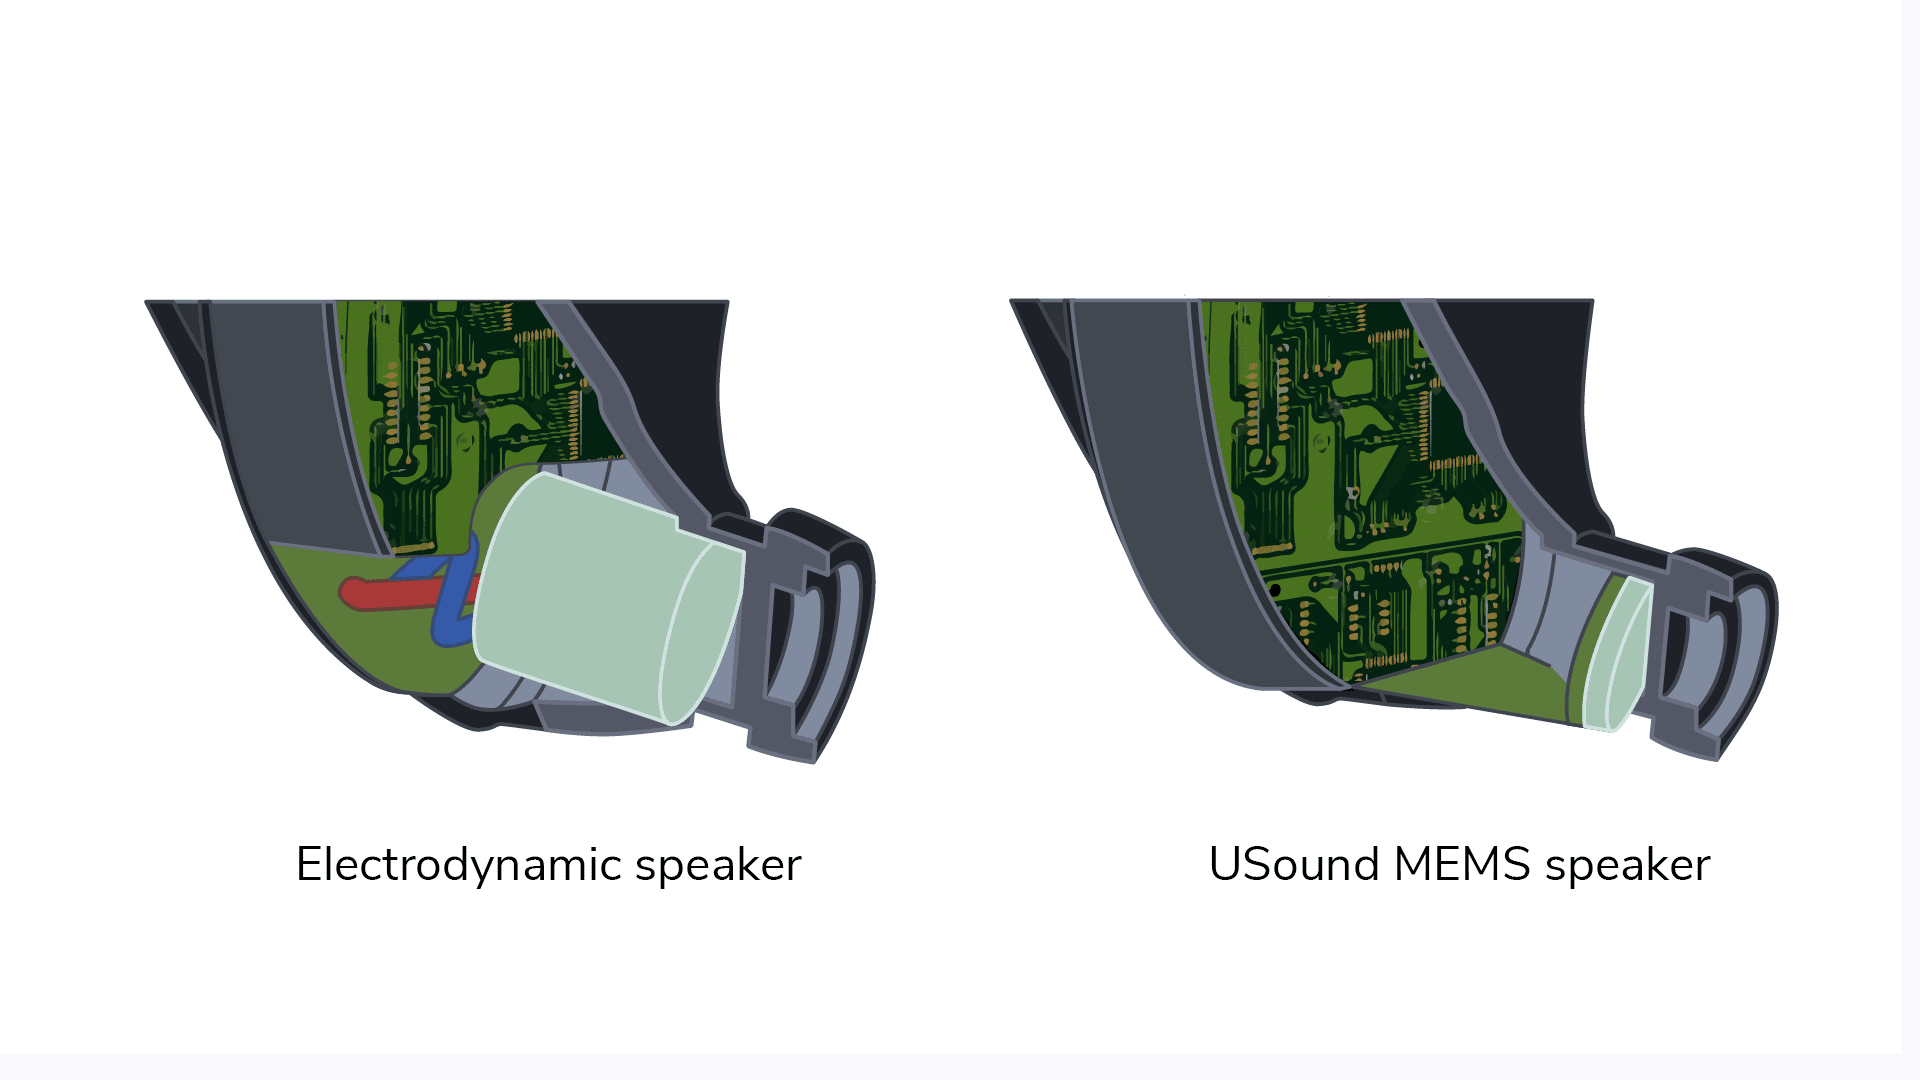 Comparison between VS voice coil speakers and USound MEMS speakers